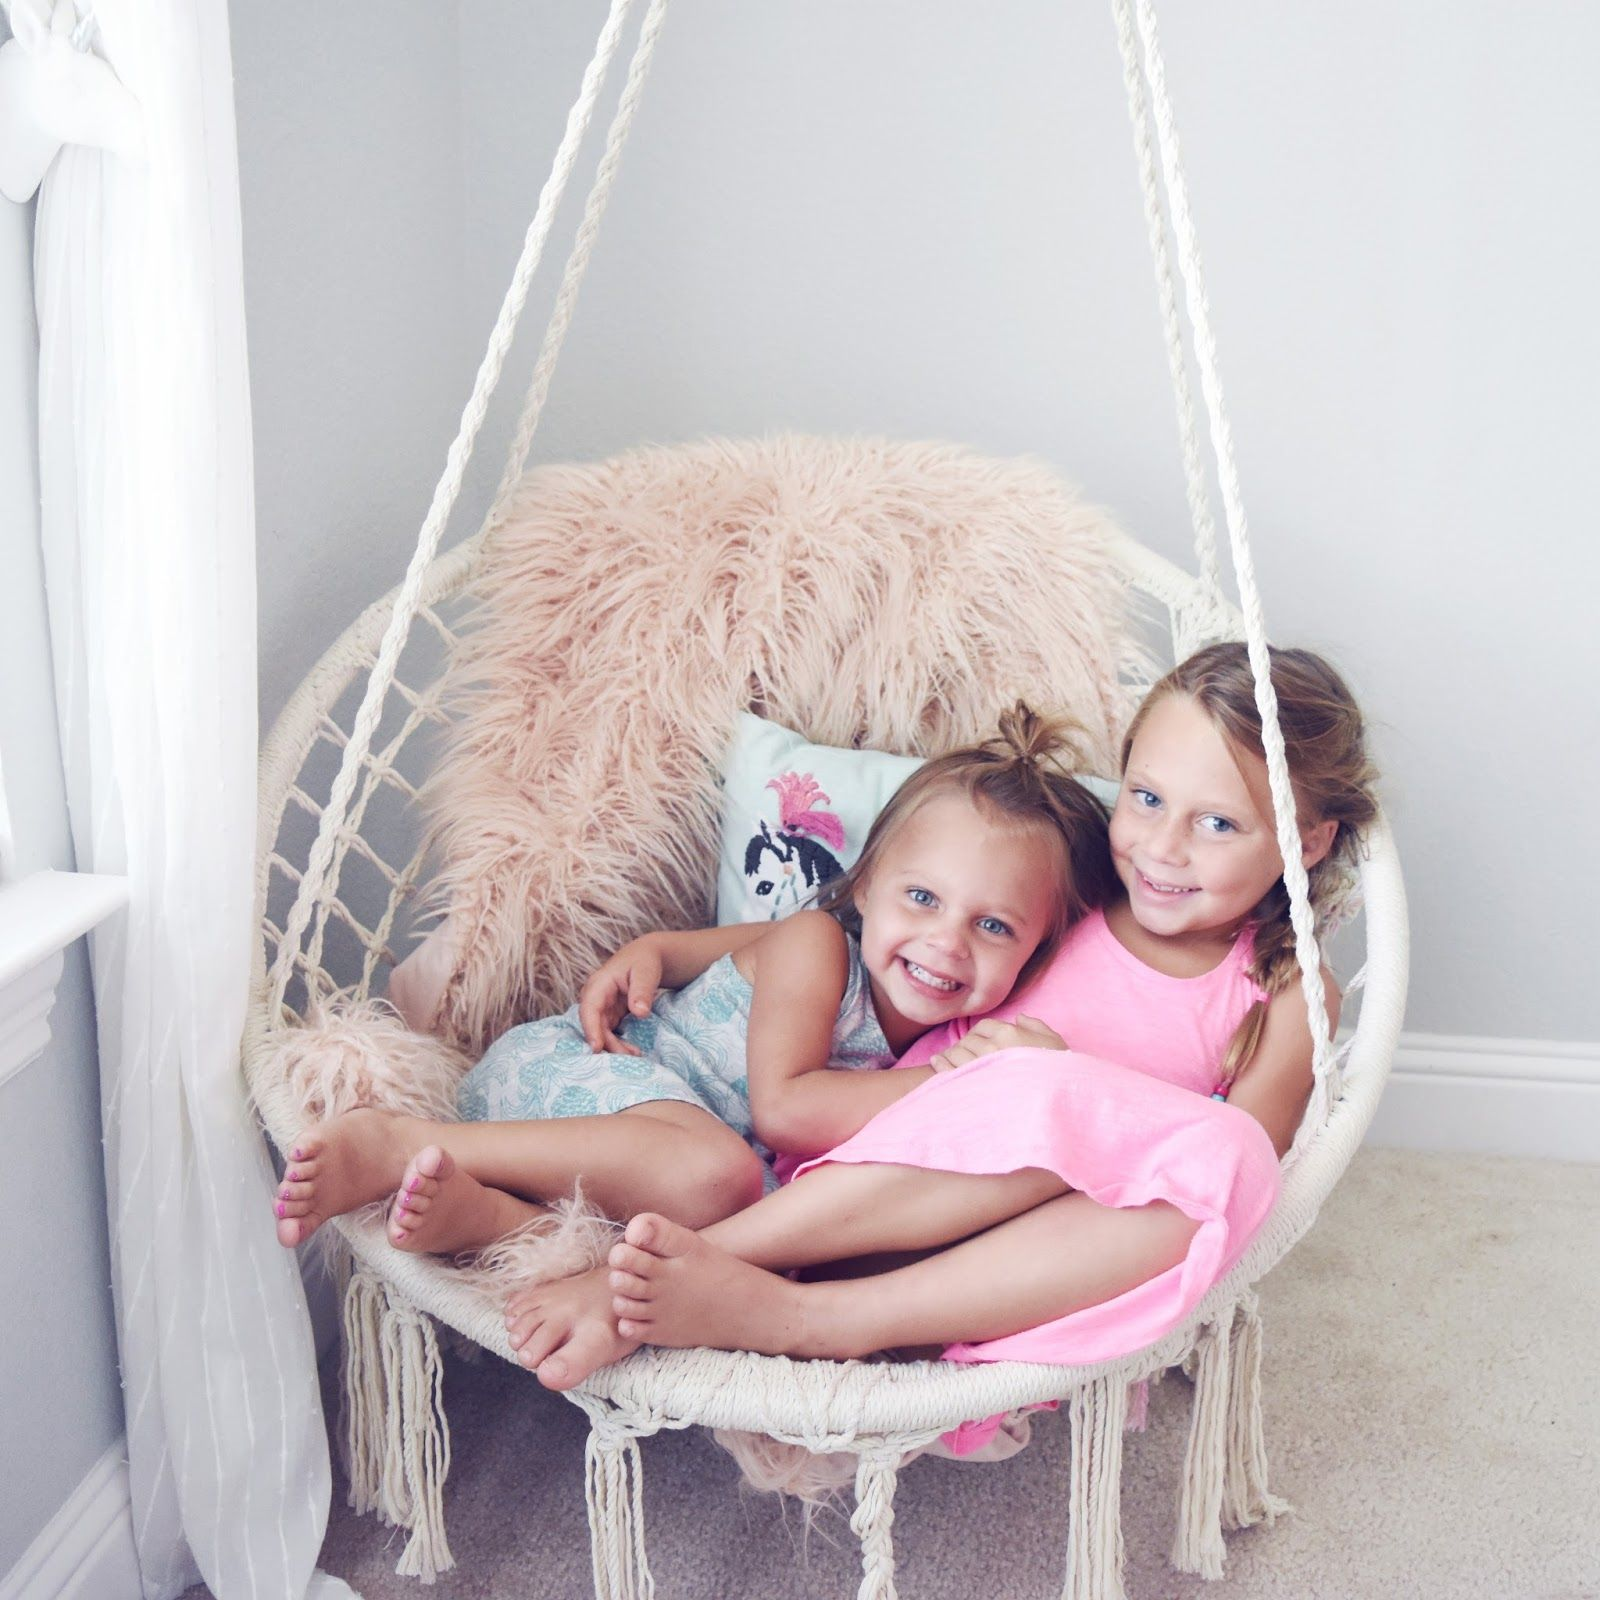 Pillow Thought Swinging Chair Swing Chair Bedroom Bedroom Chair